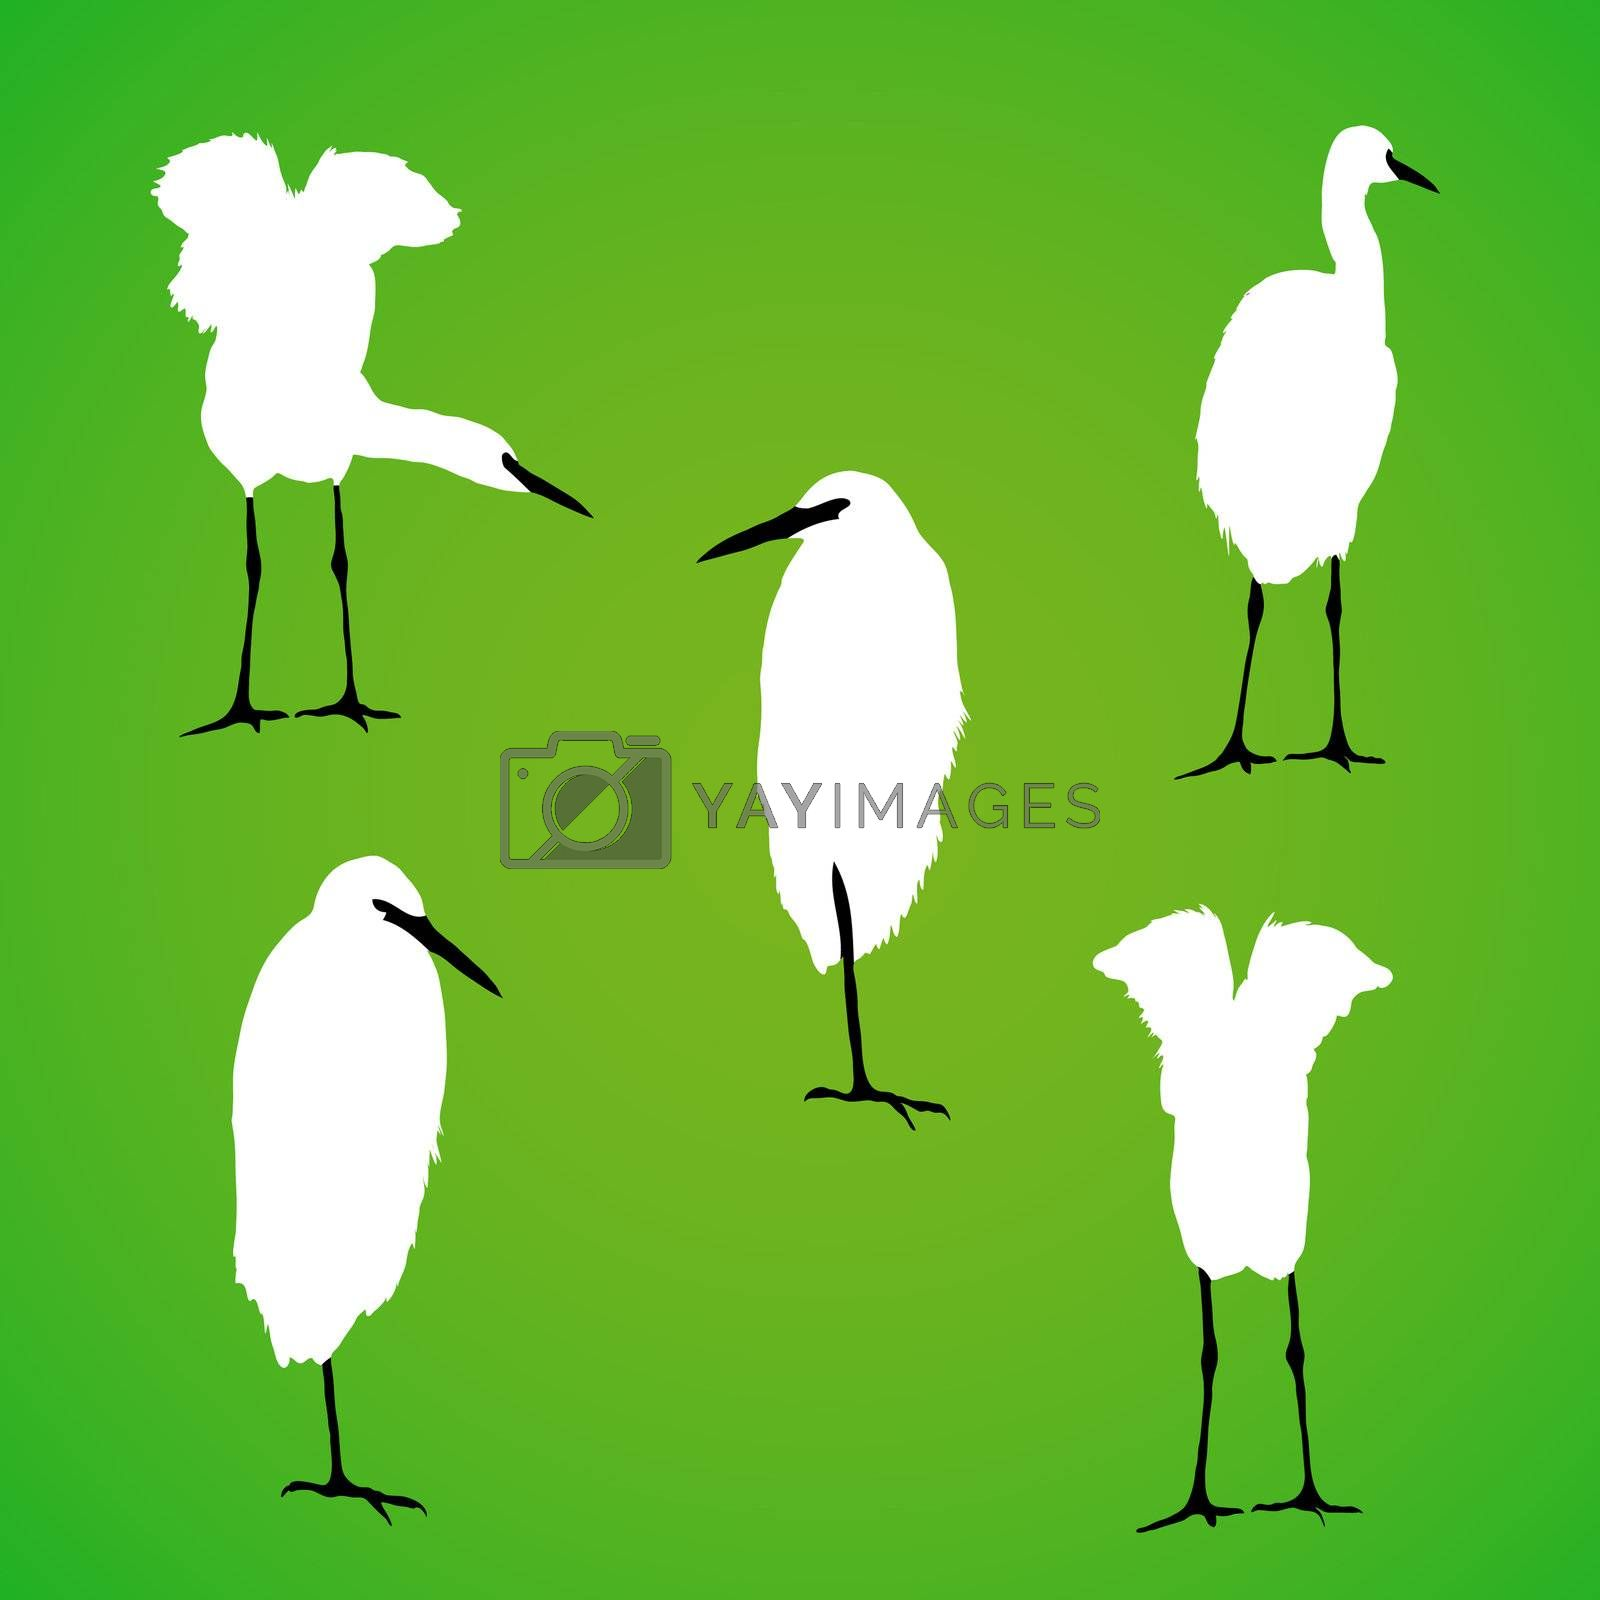 Royalty free image of Vector bird silhouette by homydesign